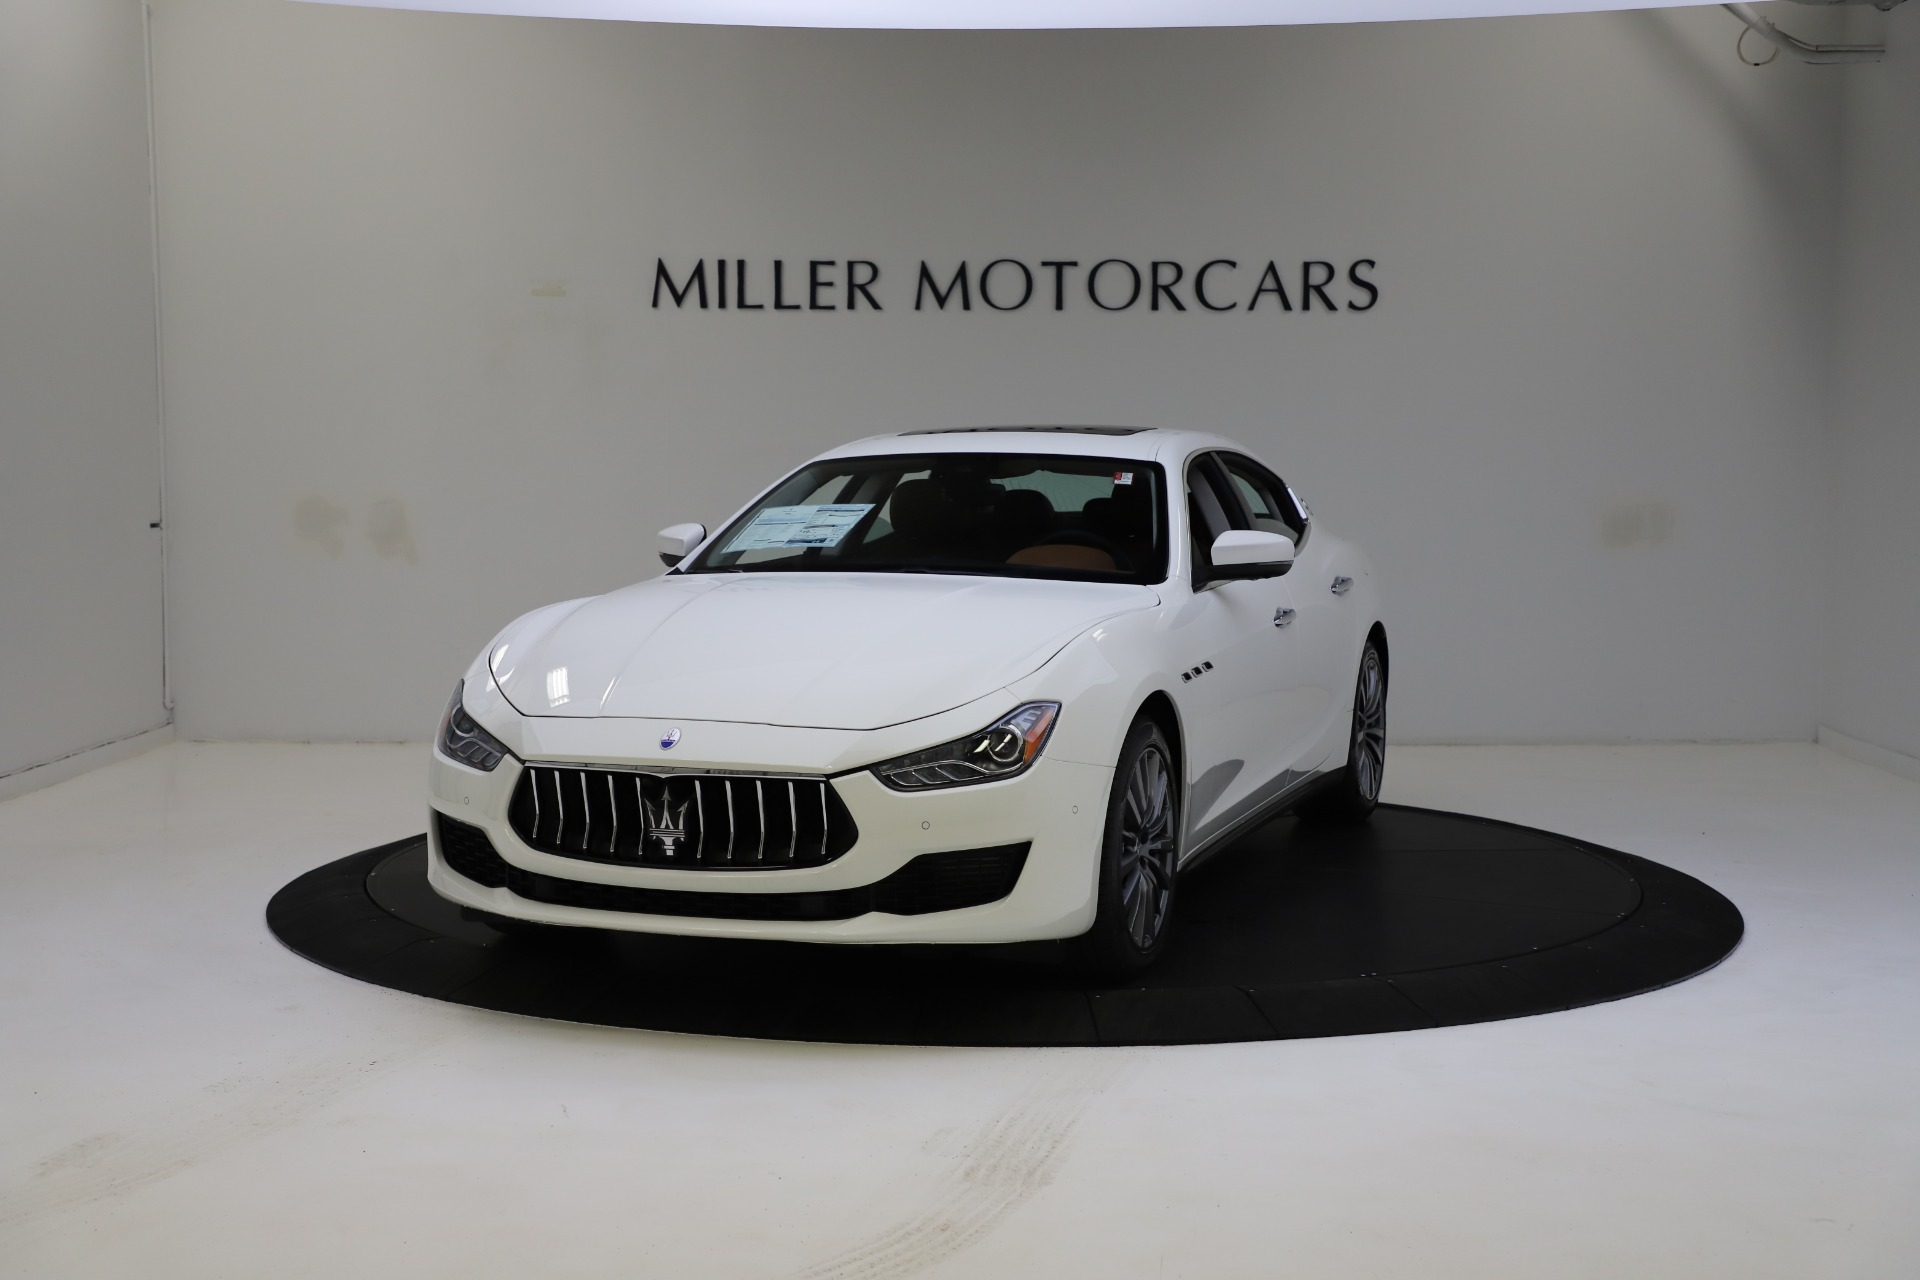 New 2021 Maserati Ghibli S Q4 for sale Sold at Bentley Greenwich in Greenwich CT 06830 1